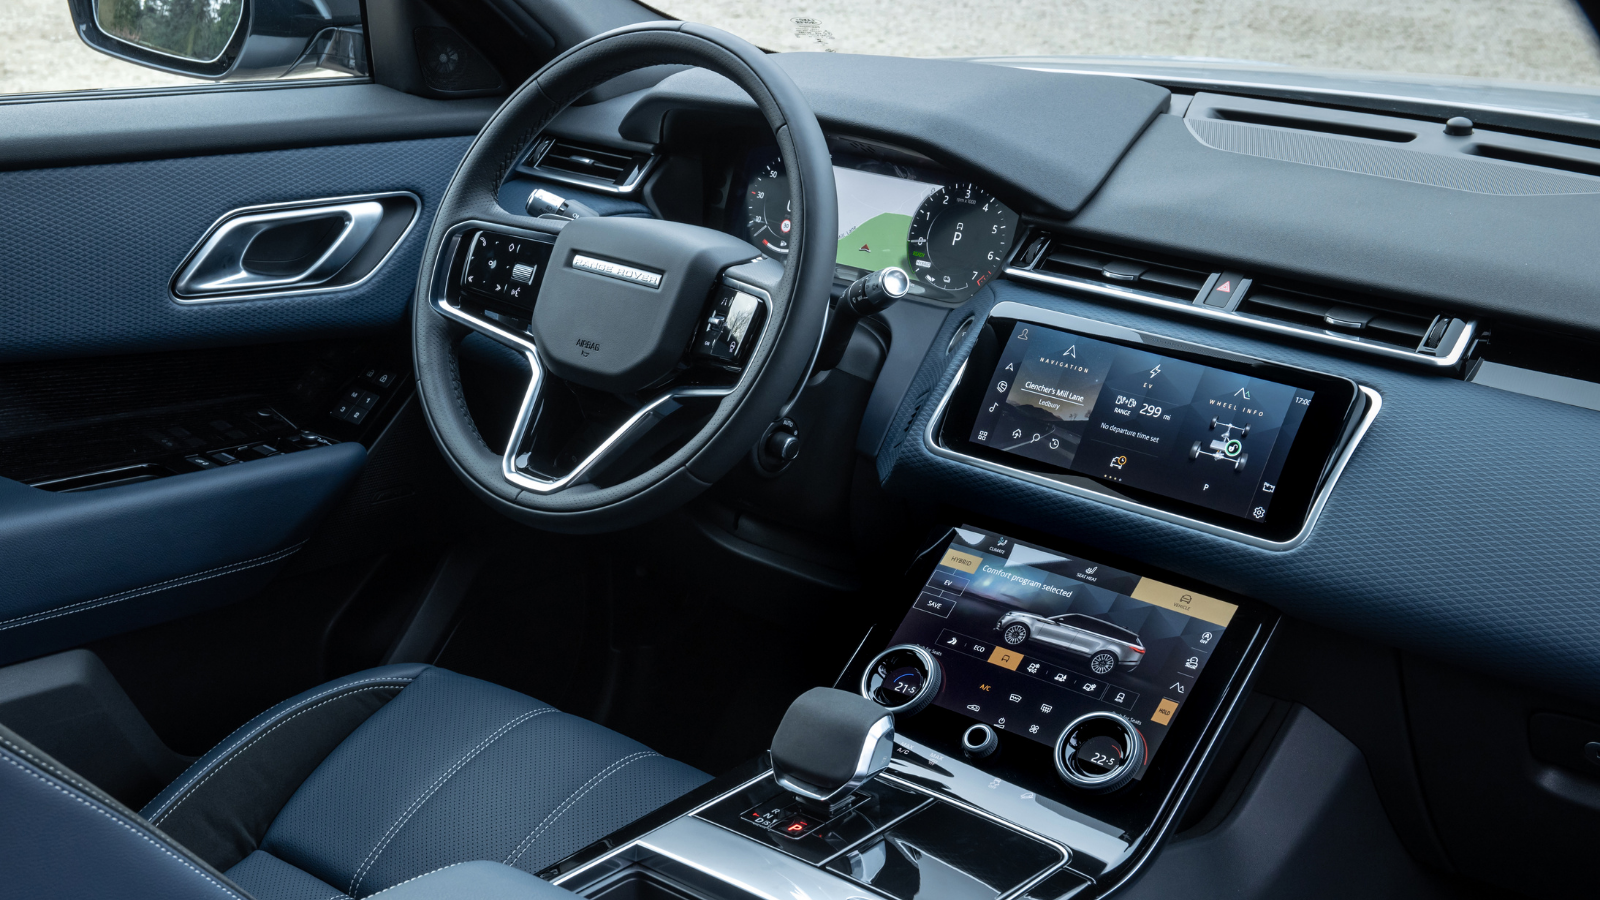 THE RANGE ROVER VELAR INTERIOR - TAKE A LOOK INSIDE